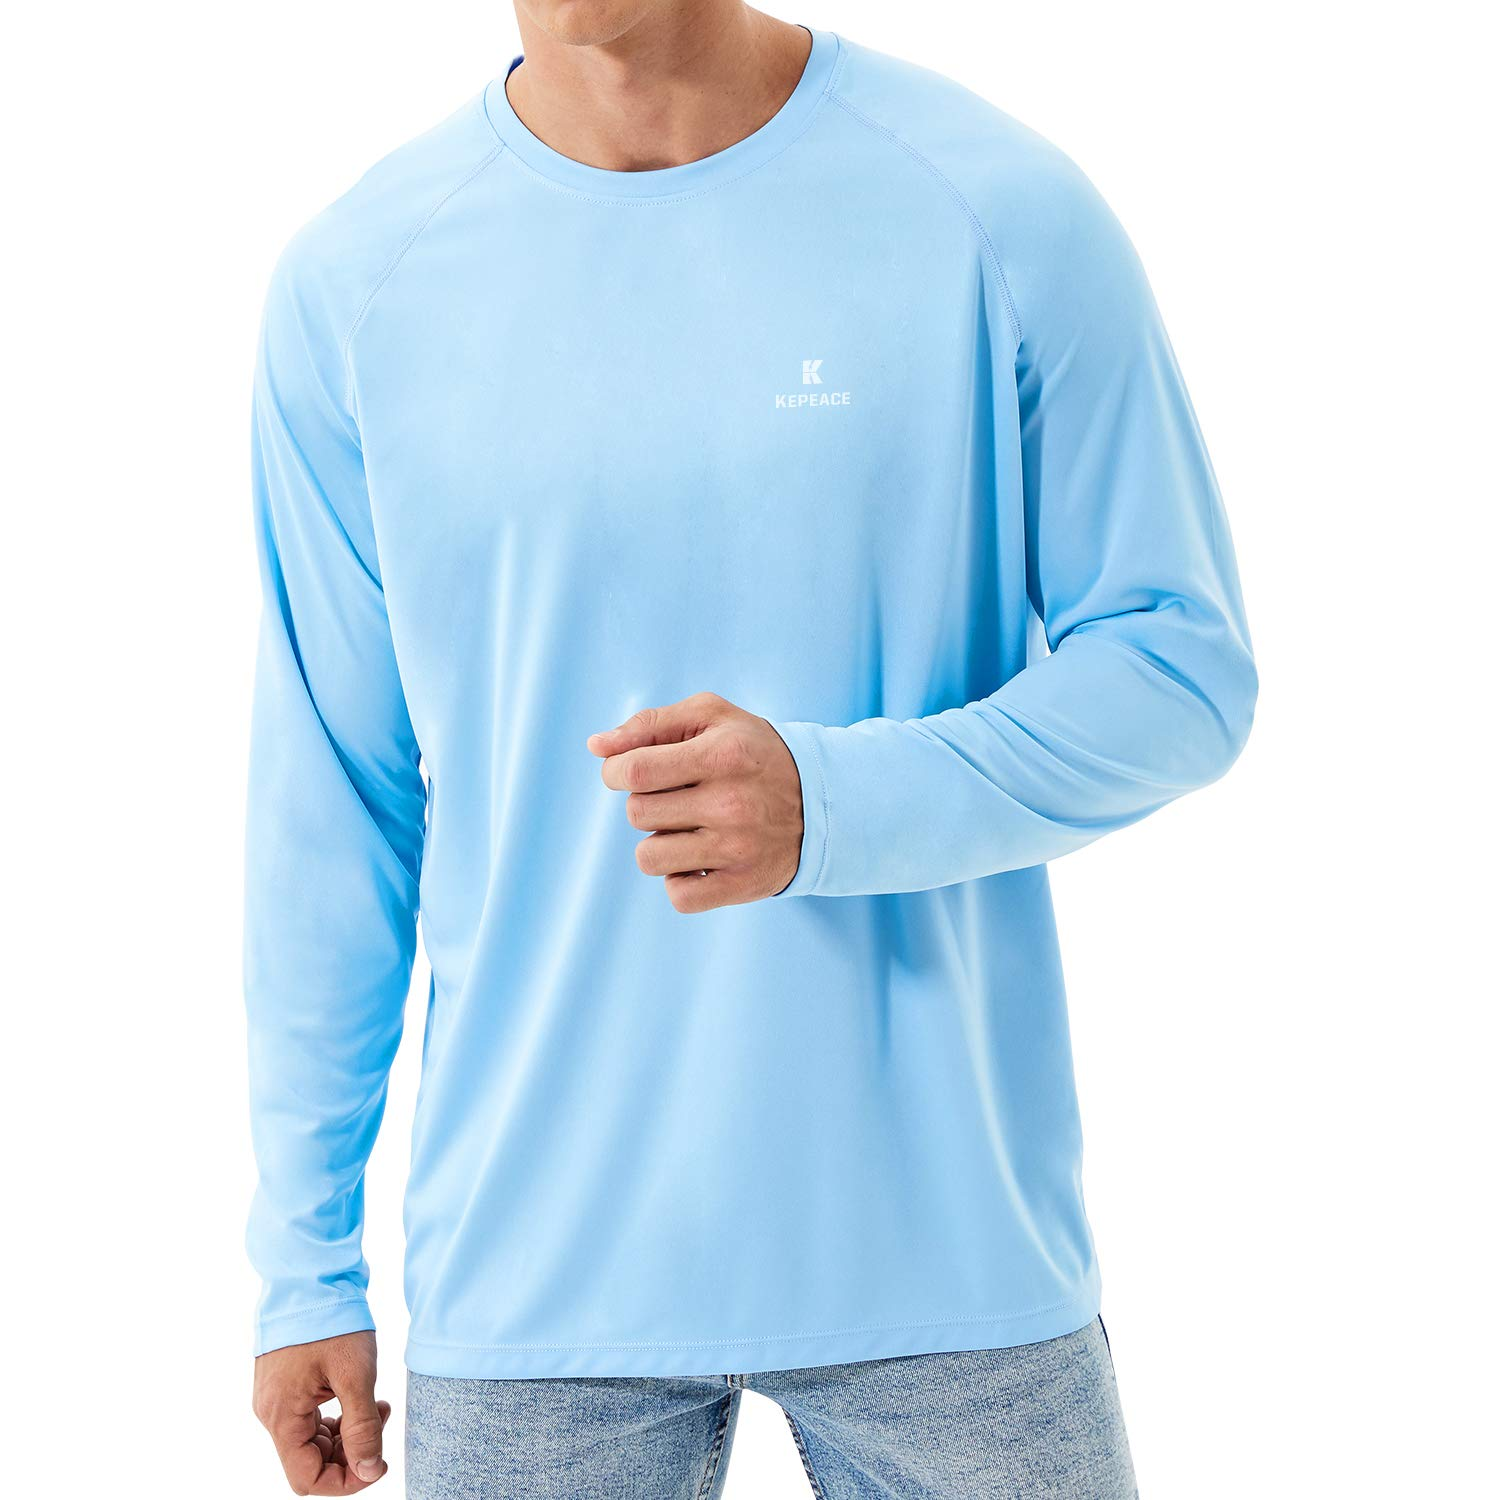 Sun Protection Hoodie Long Sleeve T-Shirt for Fishing Hiking Running Kepeace Mens UPF 50